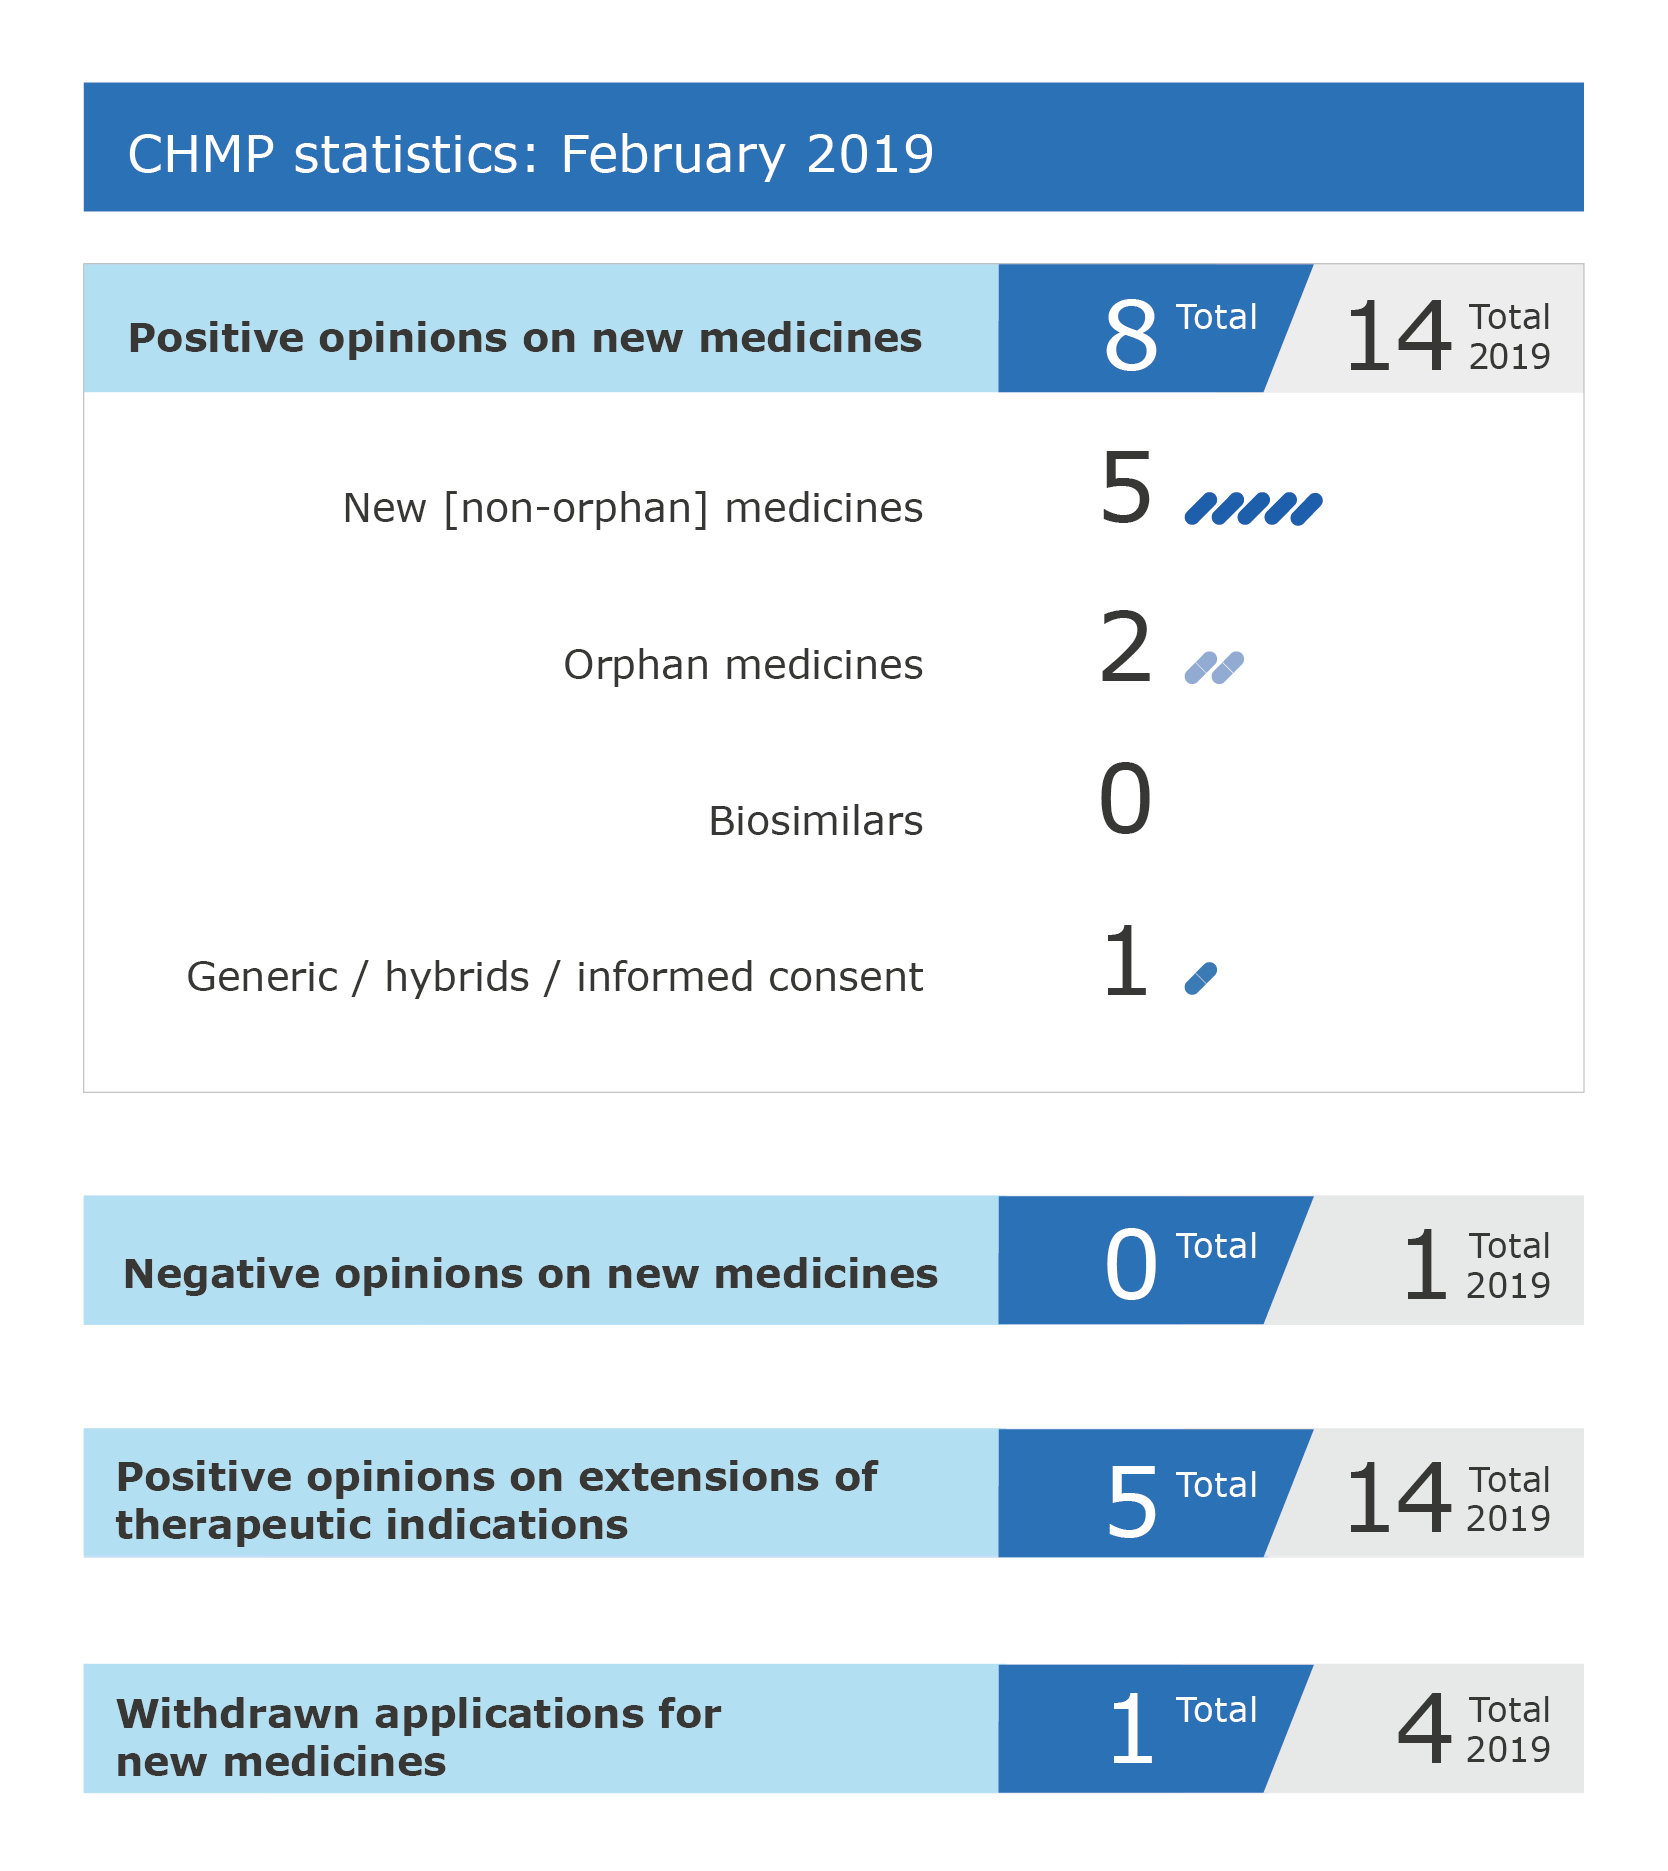 CHMP February 2019 figures